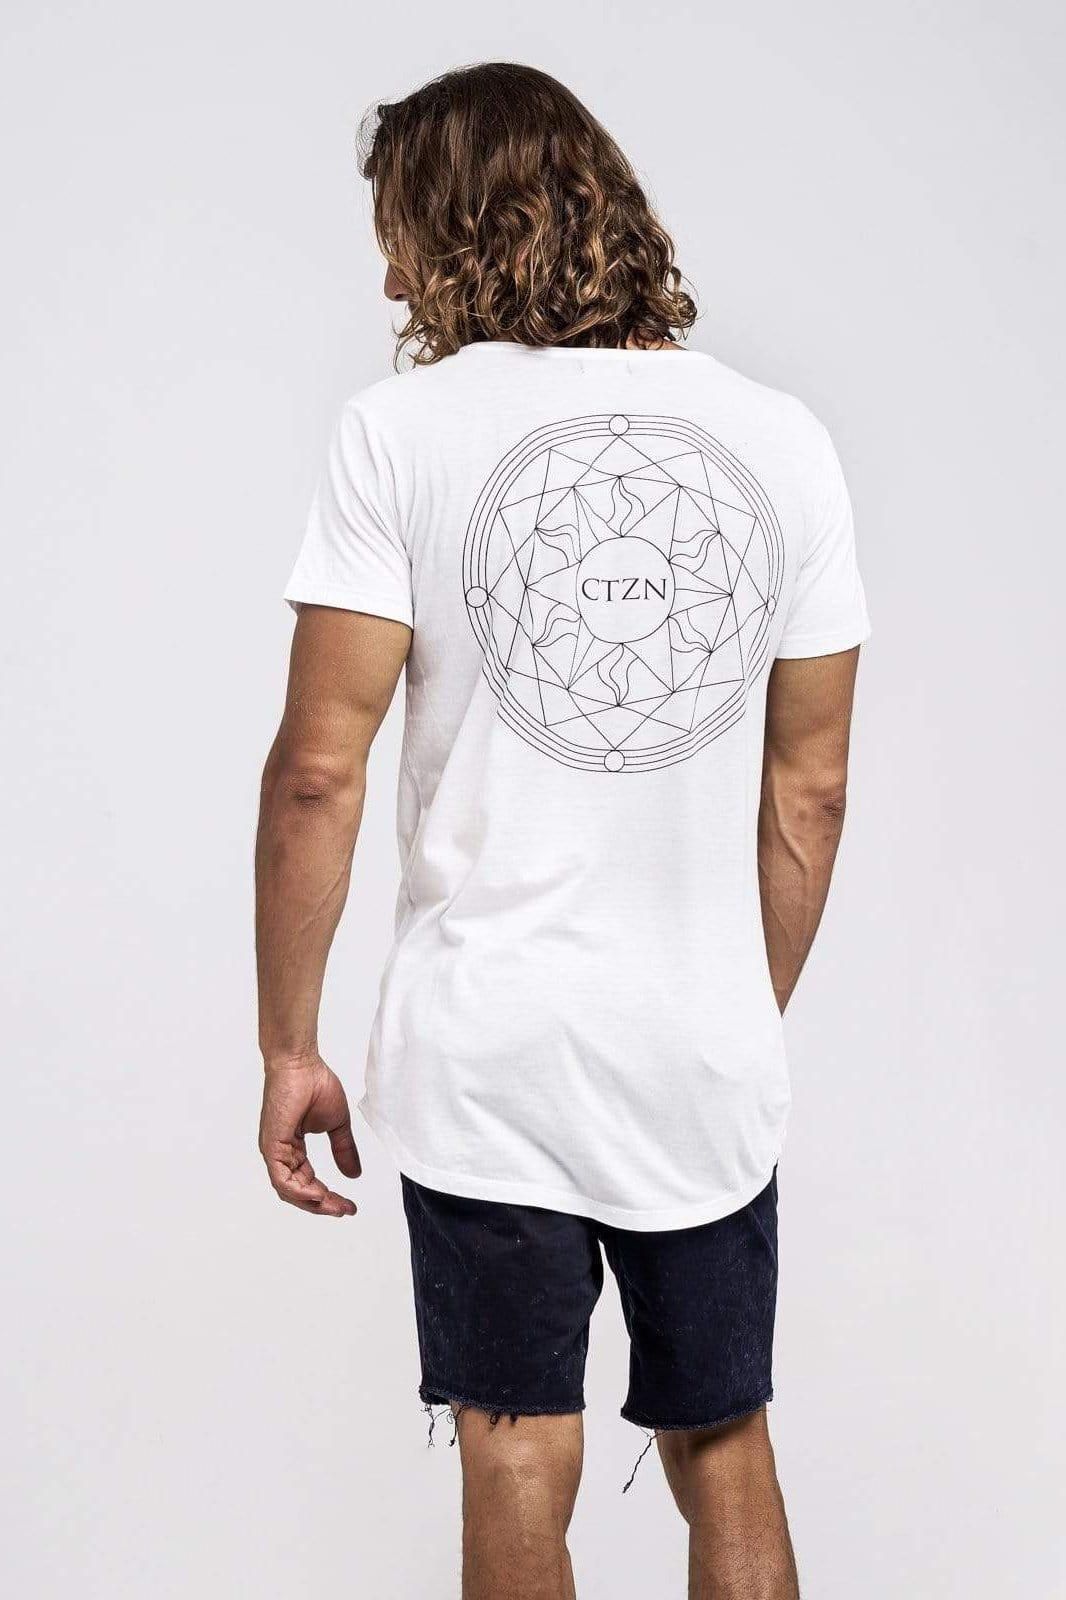 Ctzn Tee Sun Star - Man T-Shirt - CITIZENS